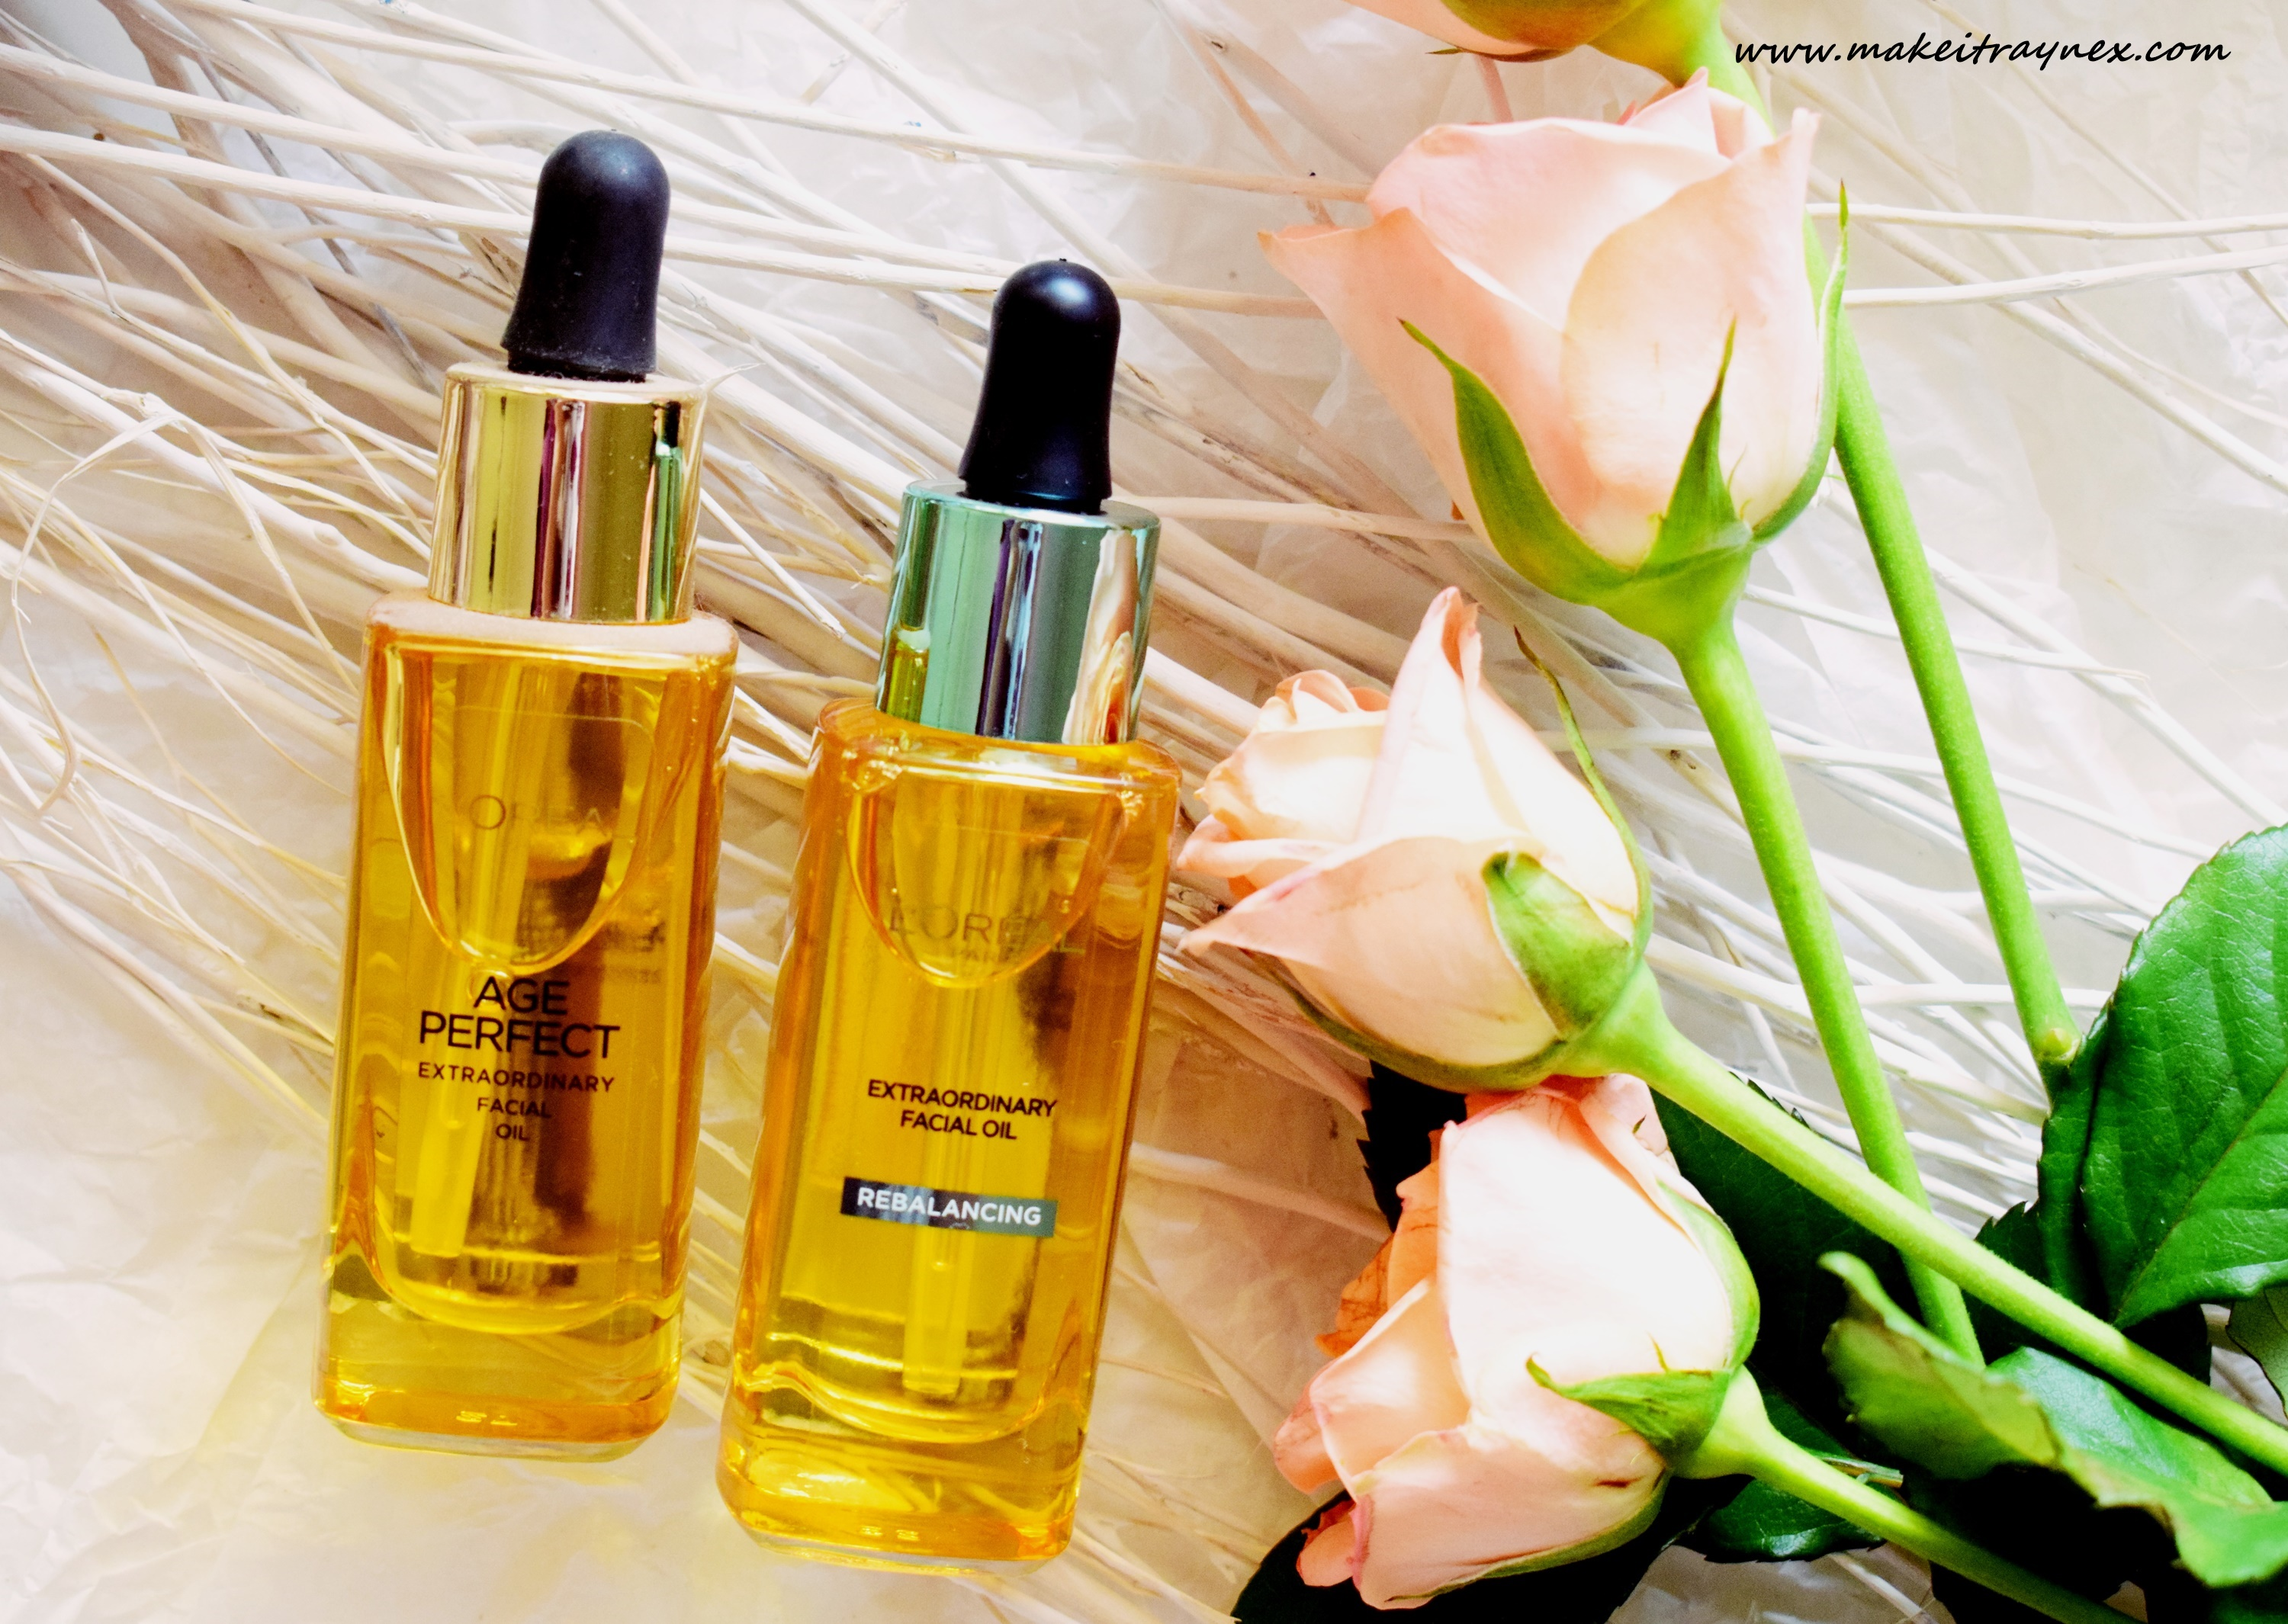 Age Perfect & Rebalancing Facial Oils from L'Oréal {REVIEW}